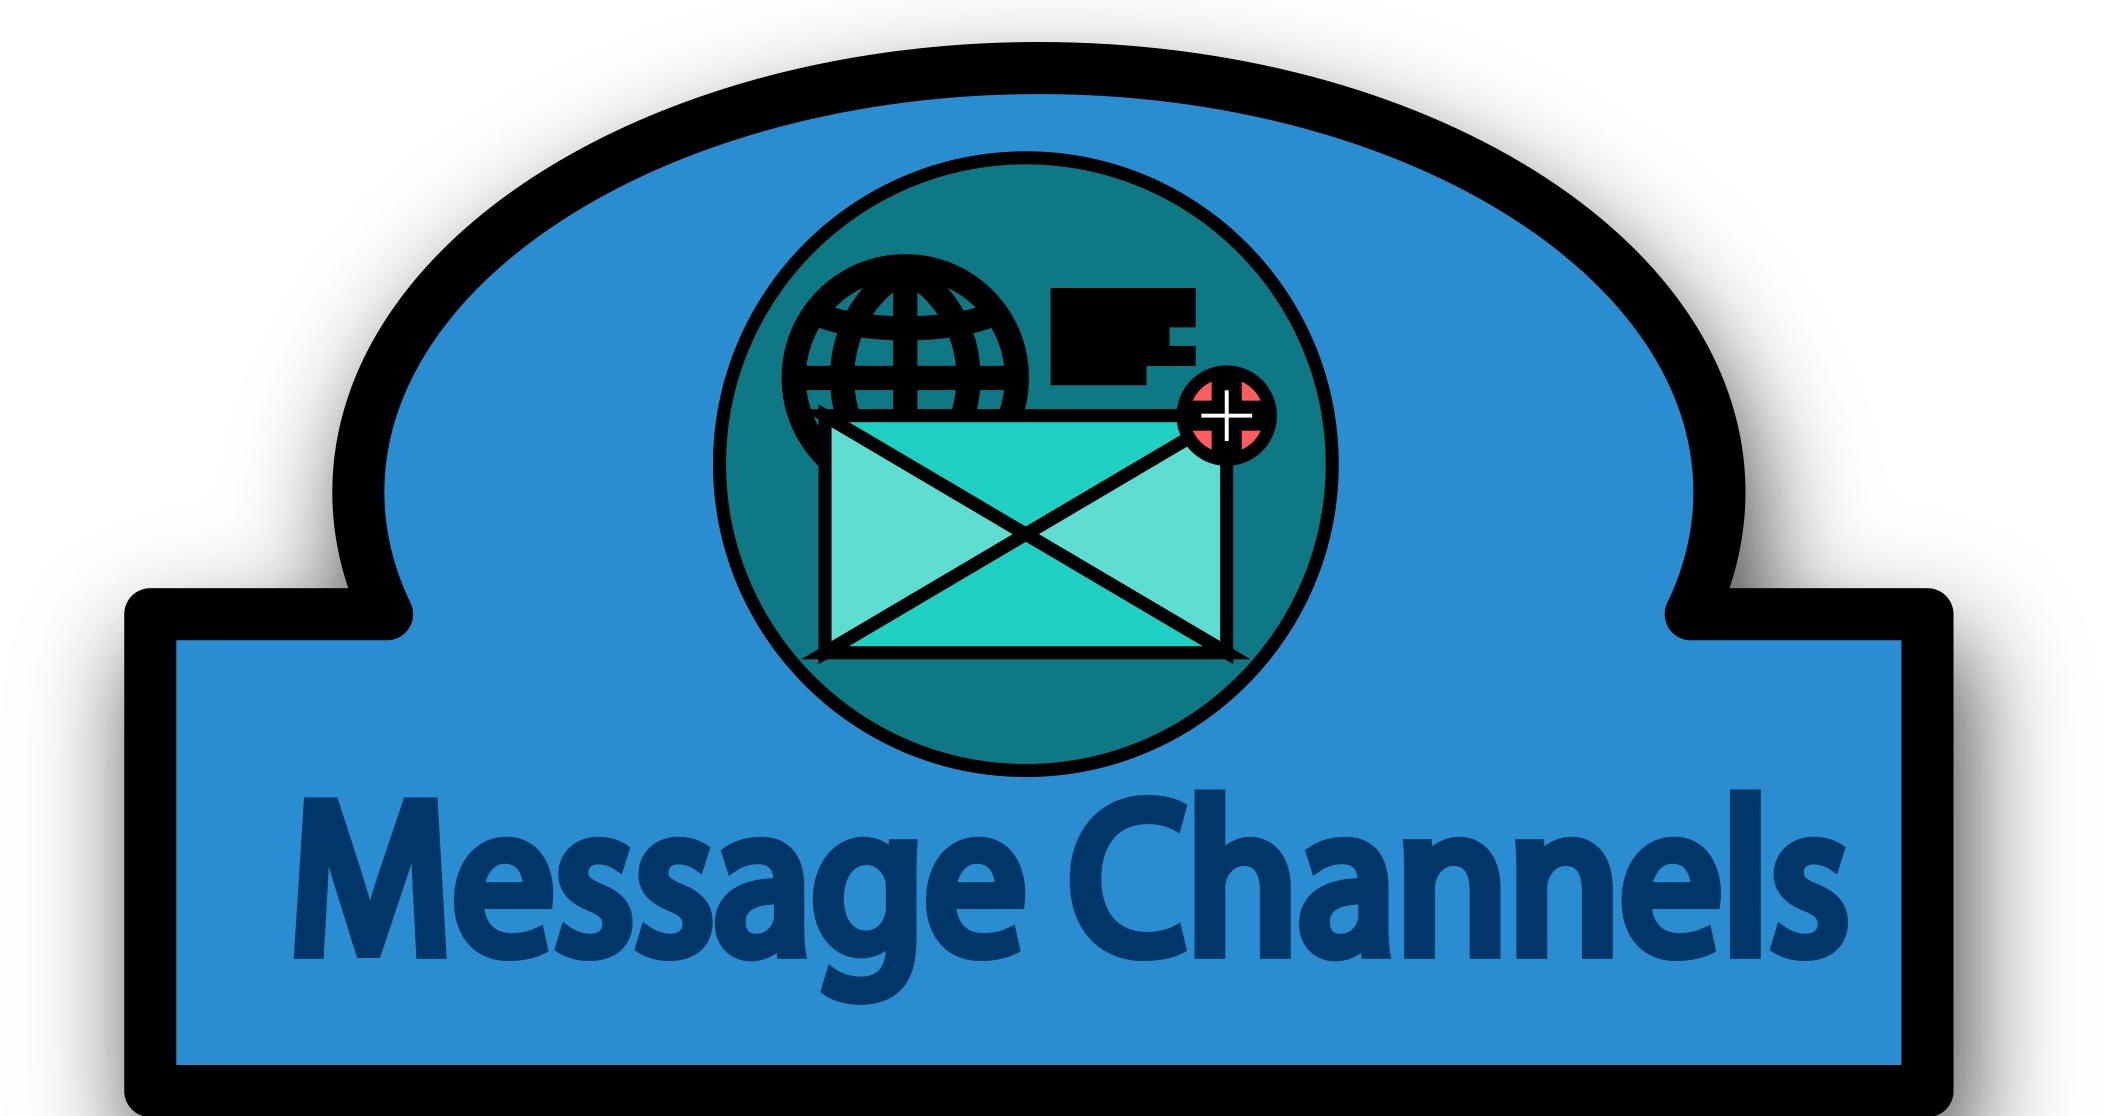 Message Channels